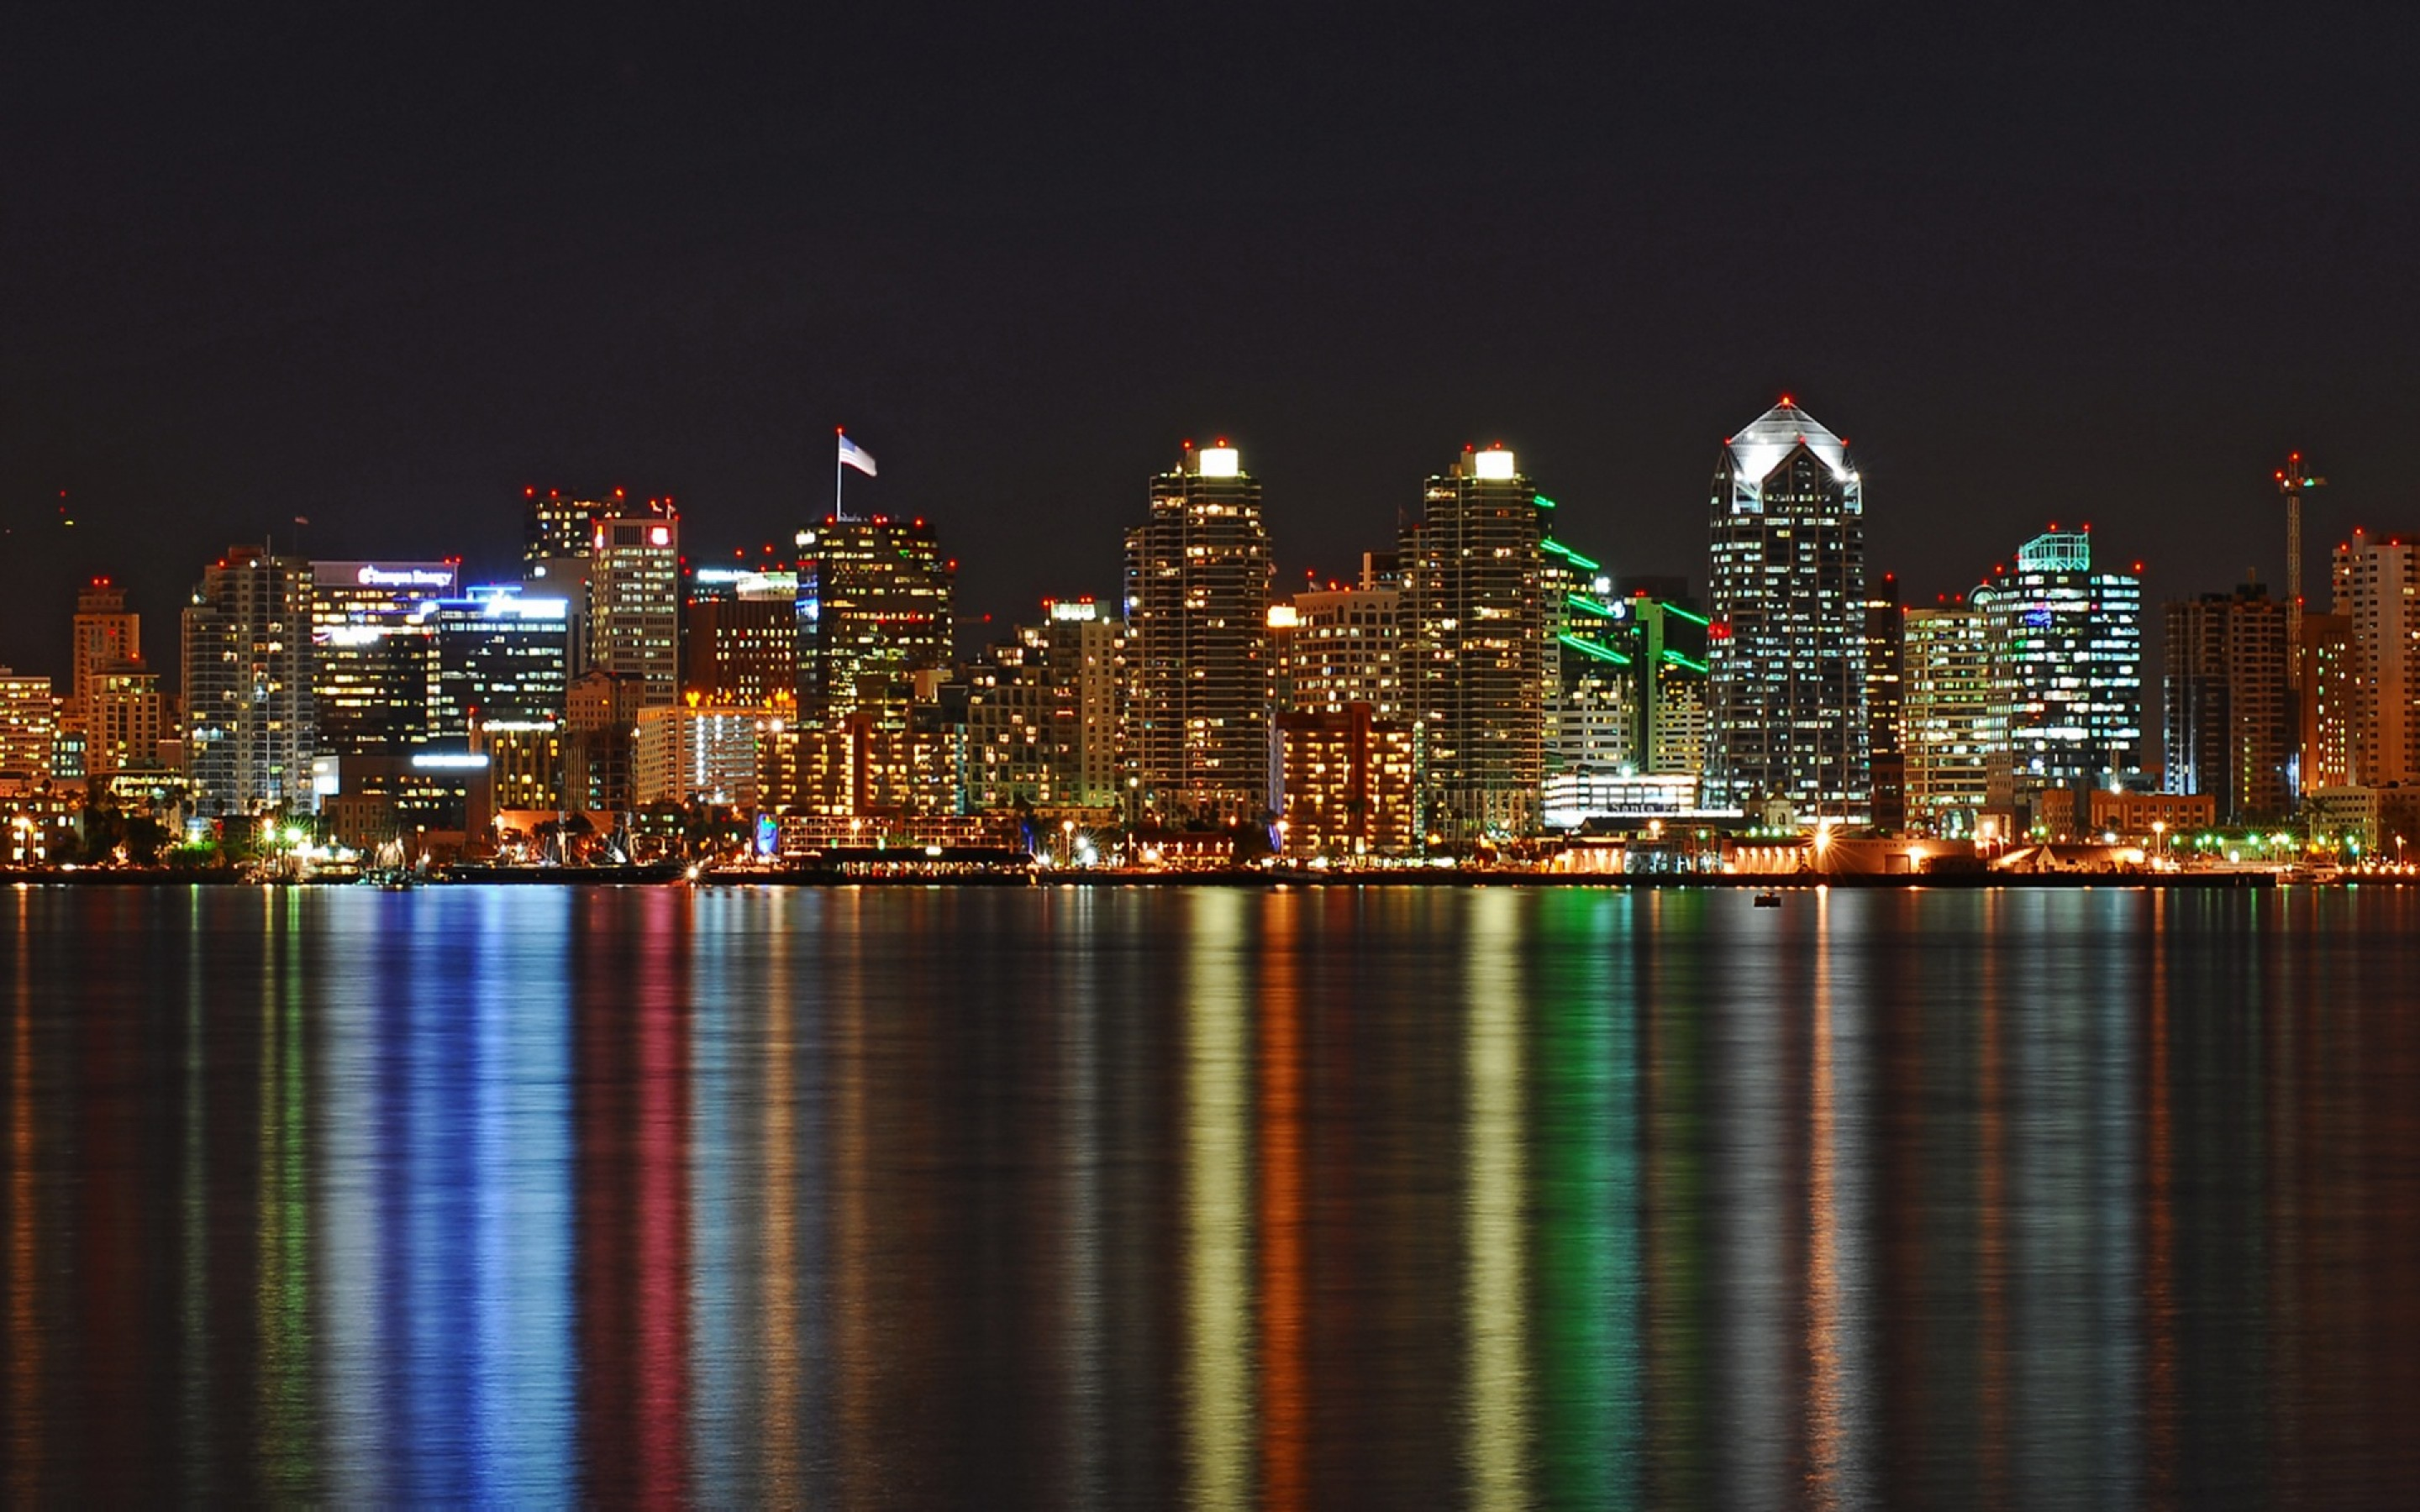 Rousing San Diego Download San Diego Px Definition San Diego Wallpaper City Guide San Diego Padres Wallpaper Iphone houzz-03 San Diego Wallpaper